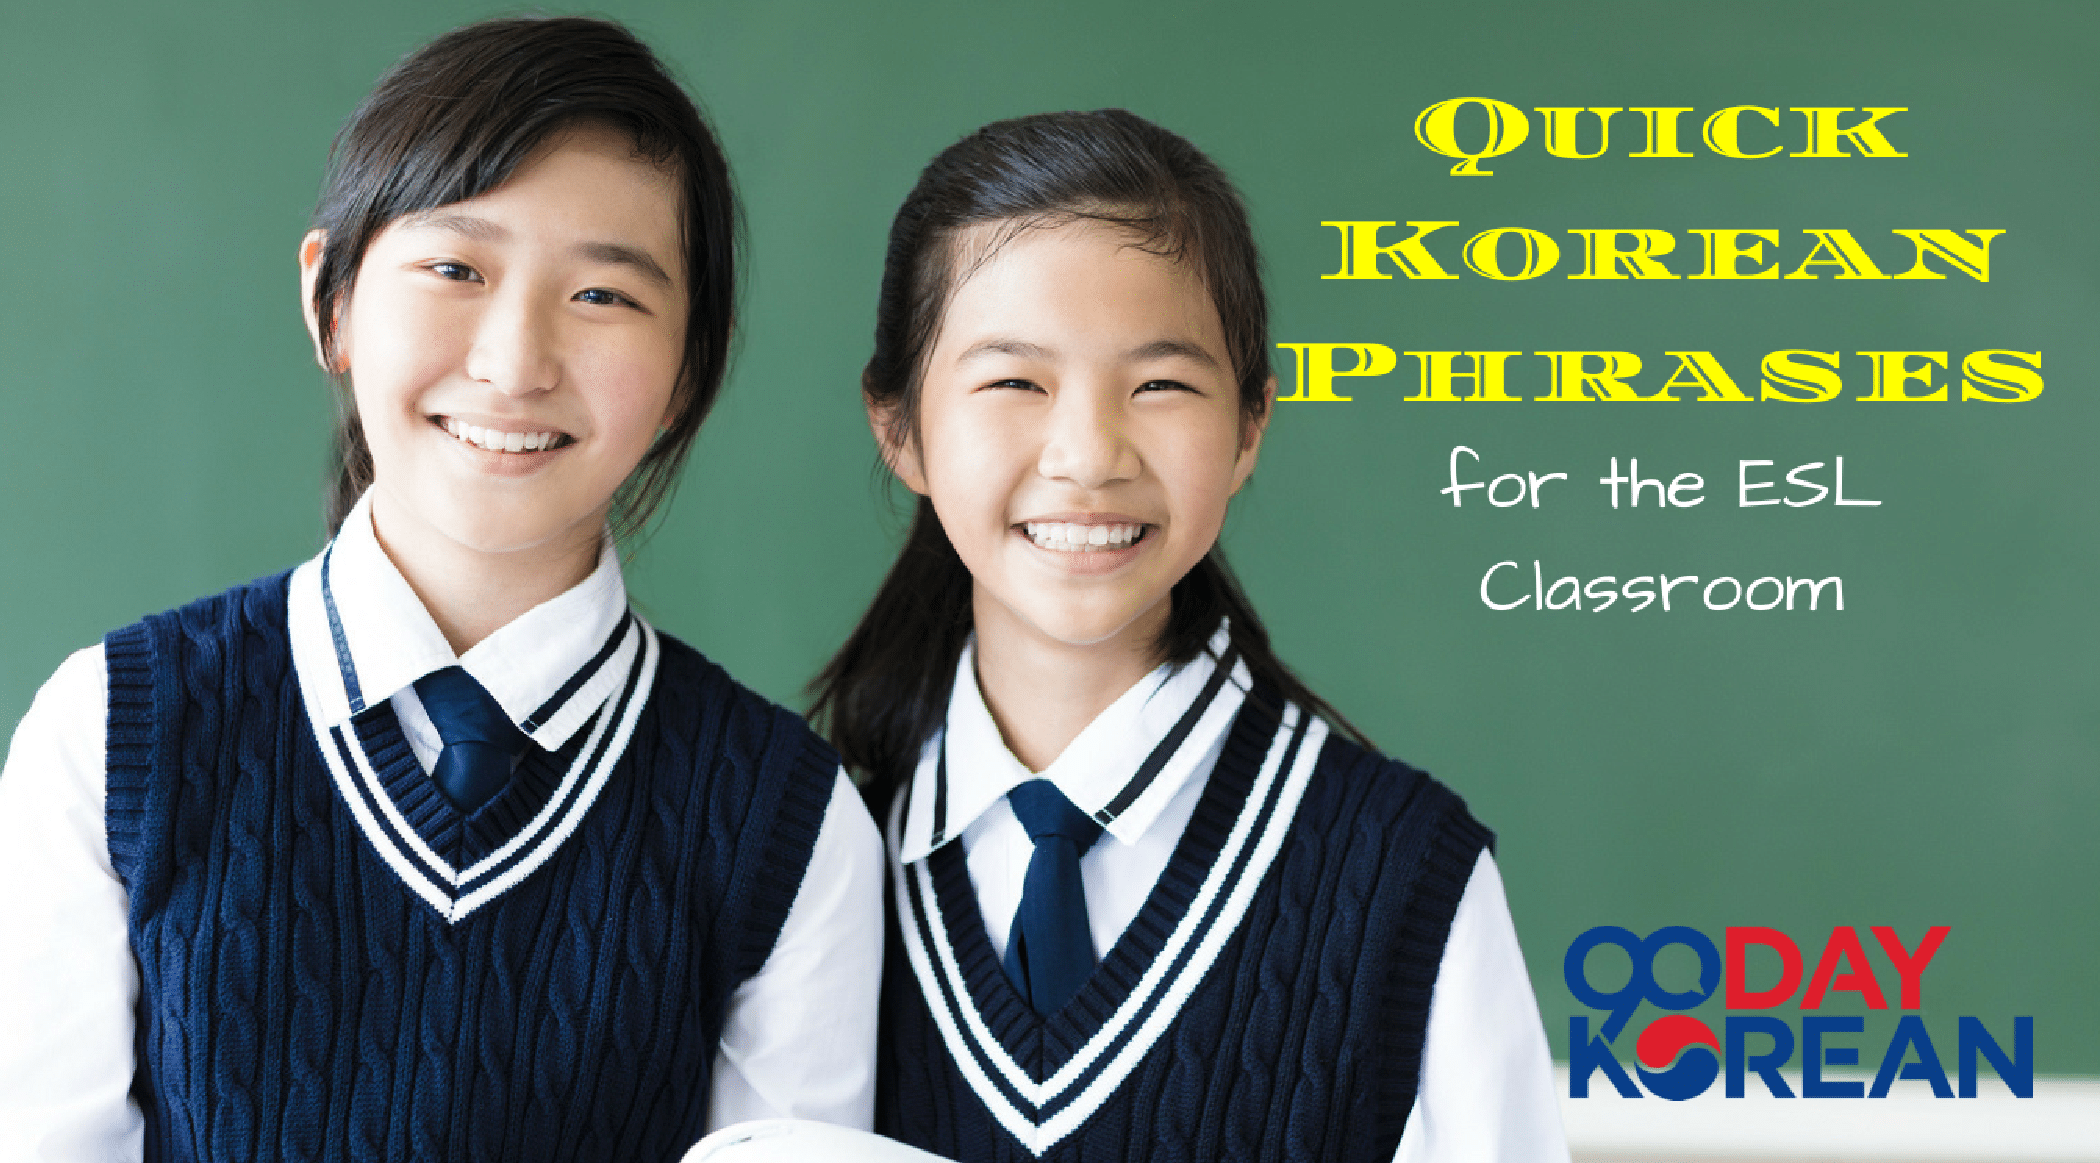 Quick Korean Phrases for the ESL Classroom